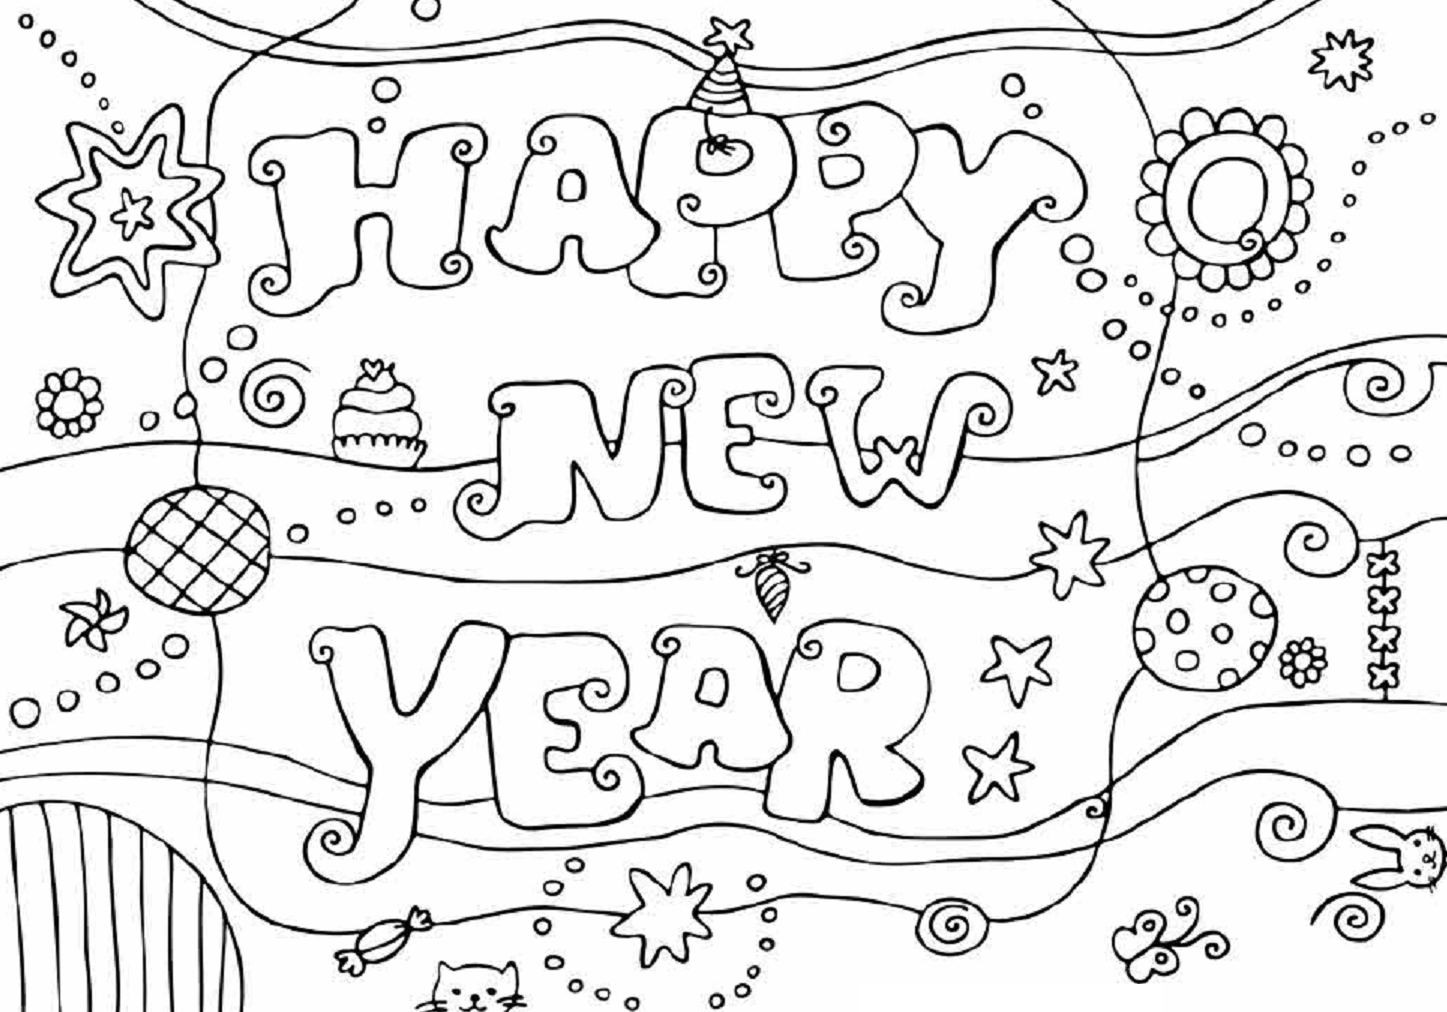 colour drawing free hd wallpapers happy new year 2015 coloring page free wallpaper